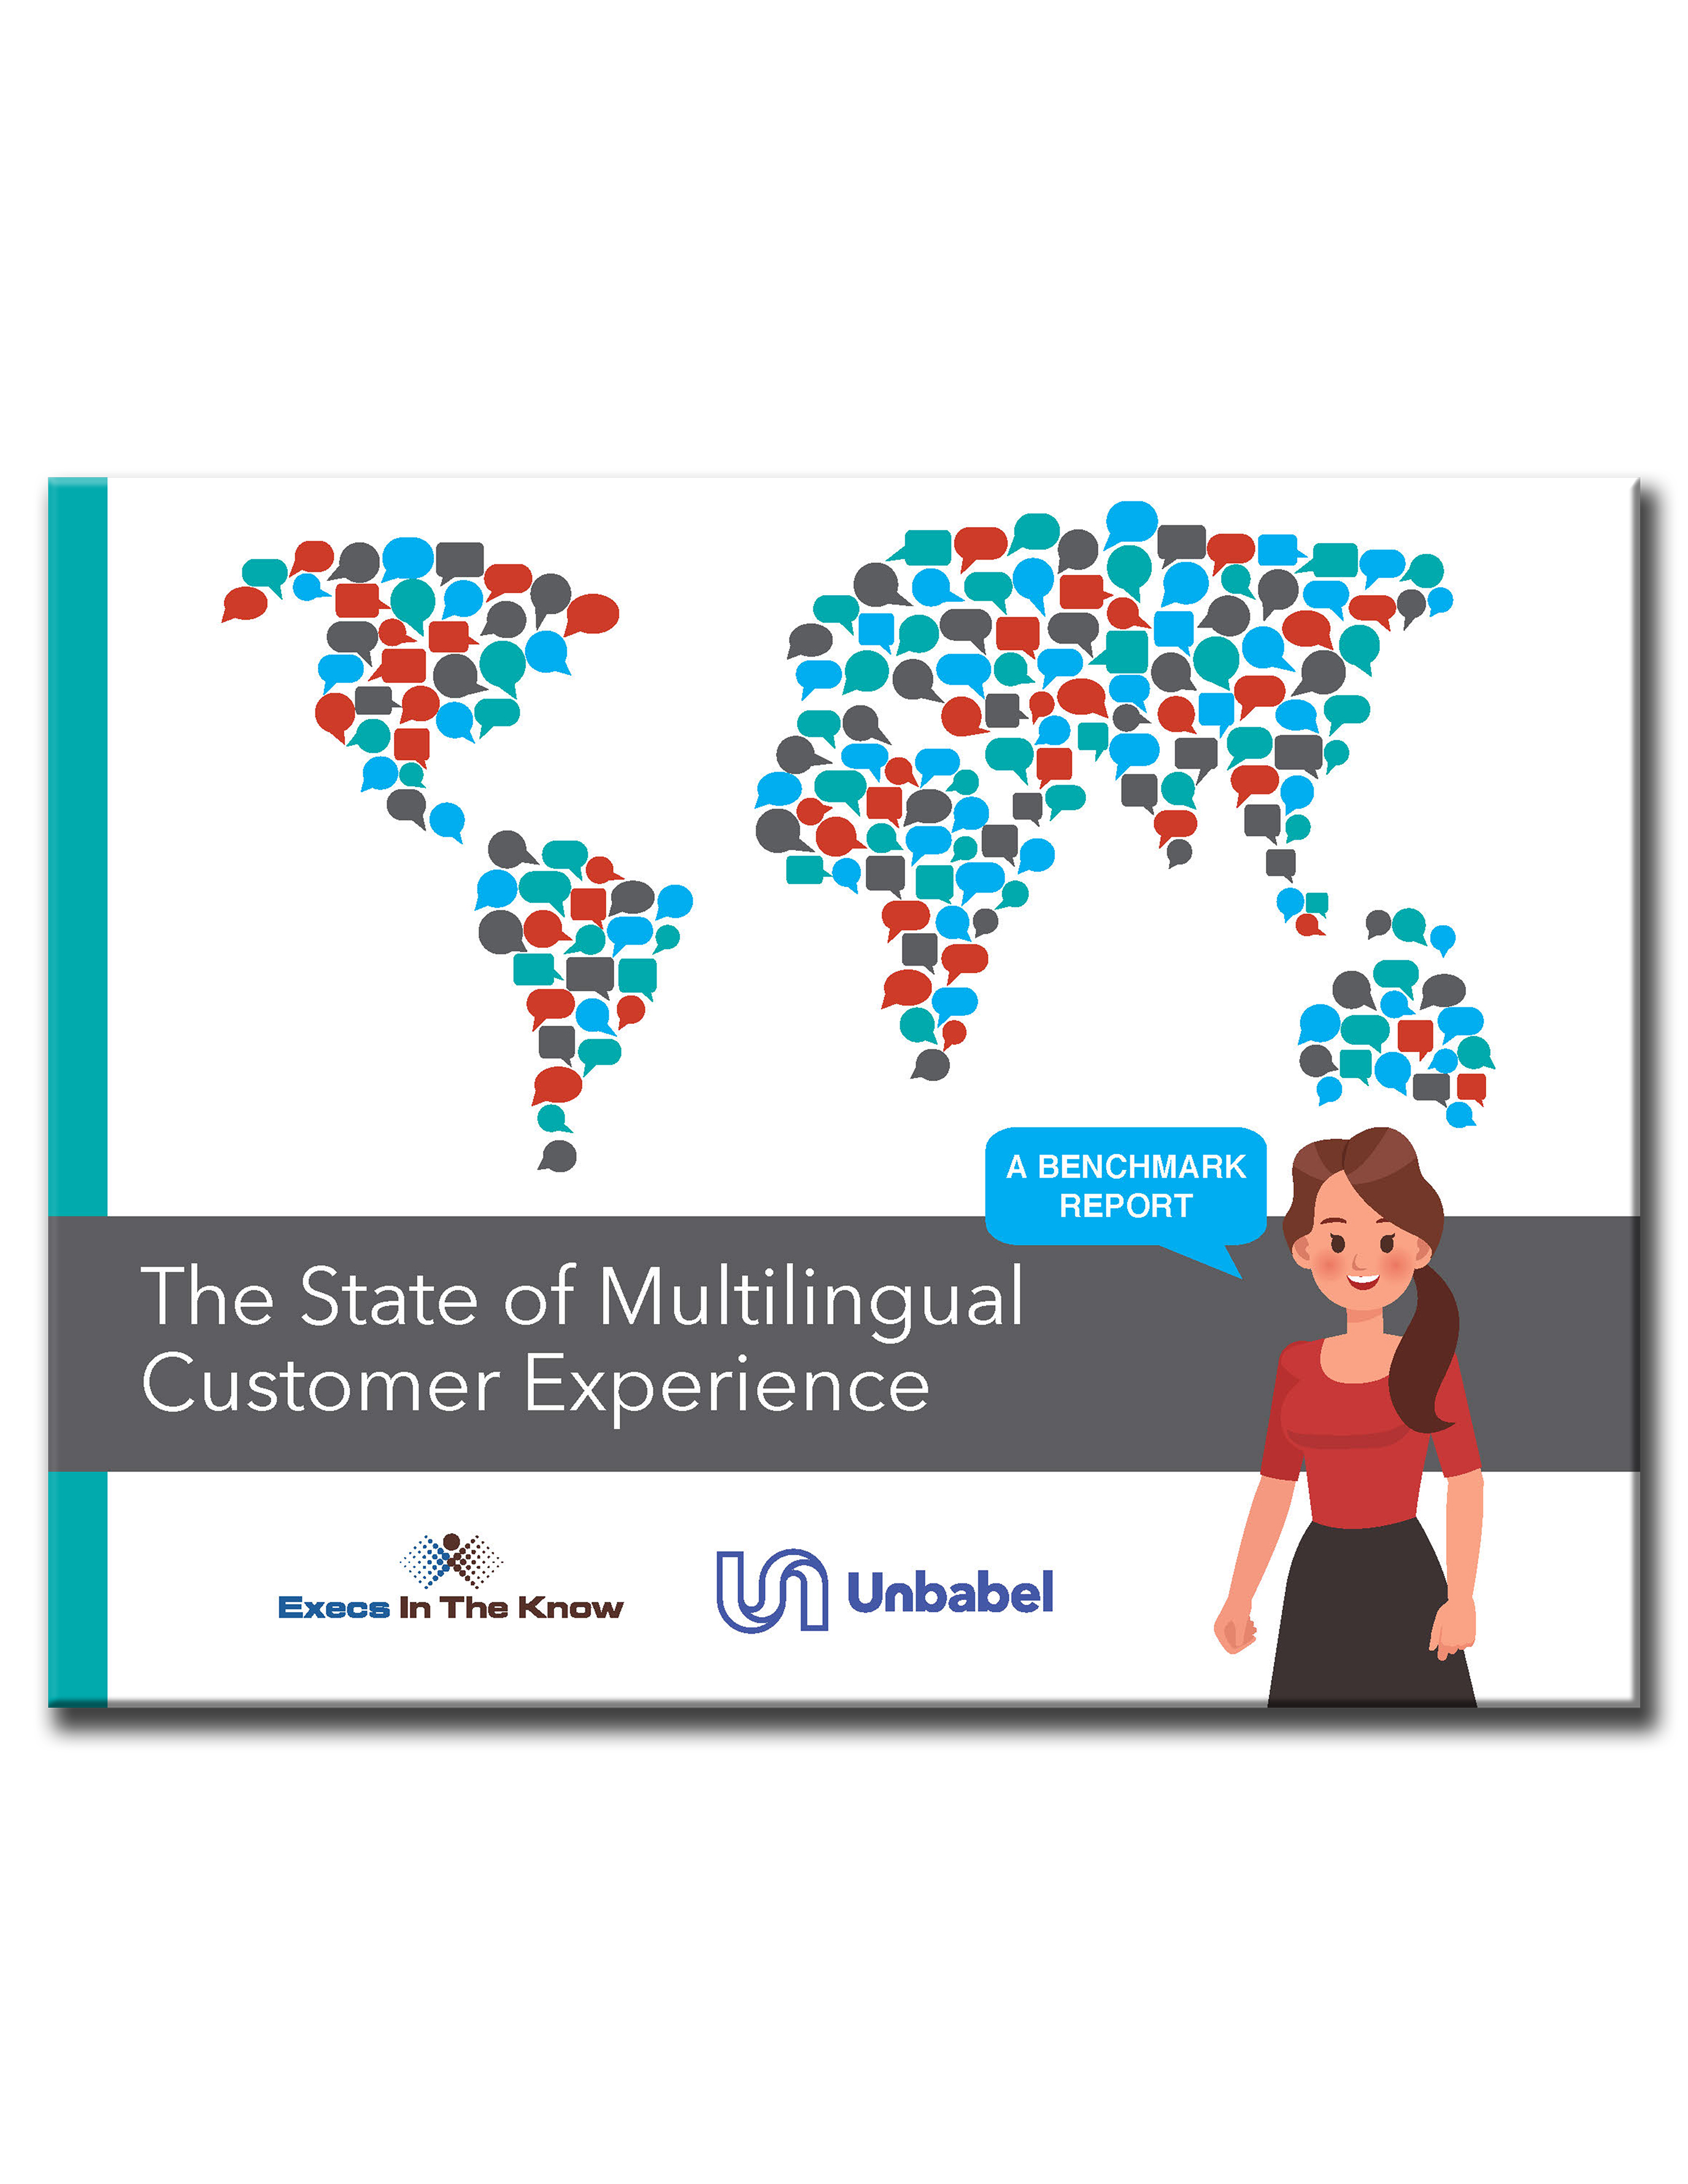 The State of Multilingual Customer Experience